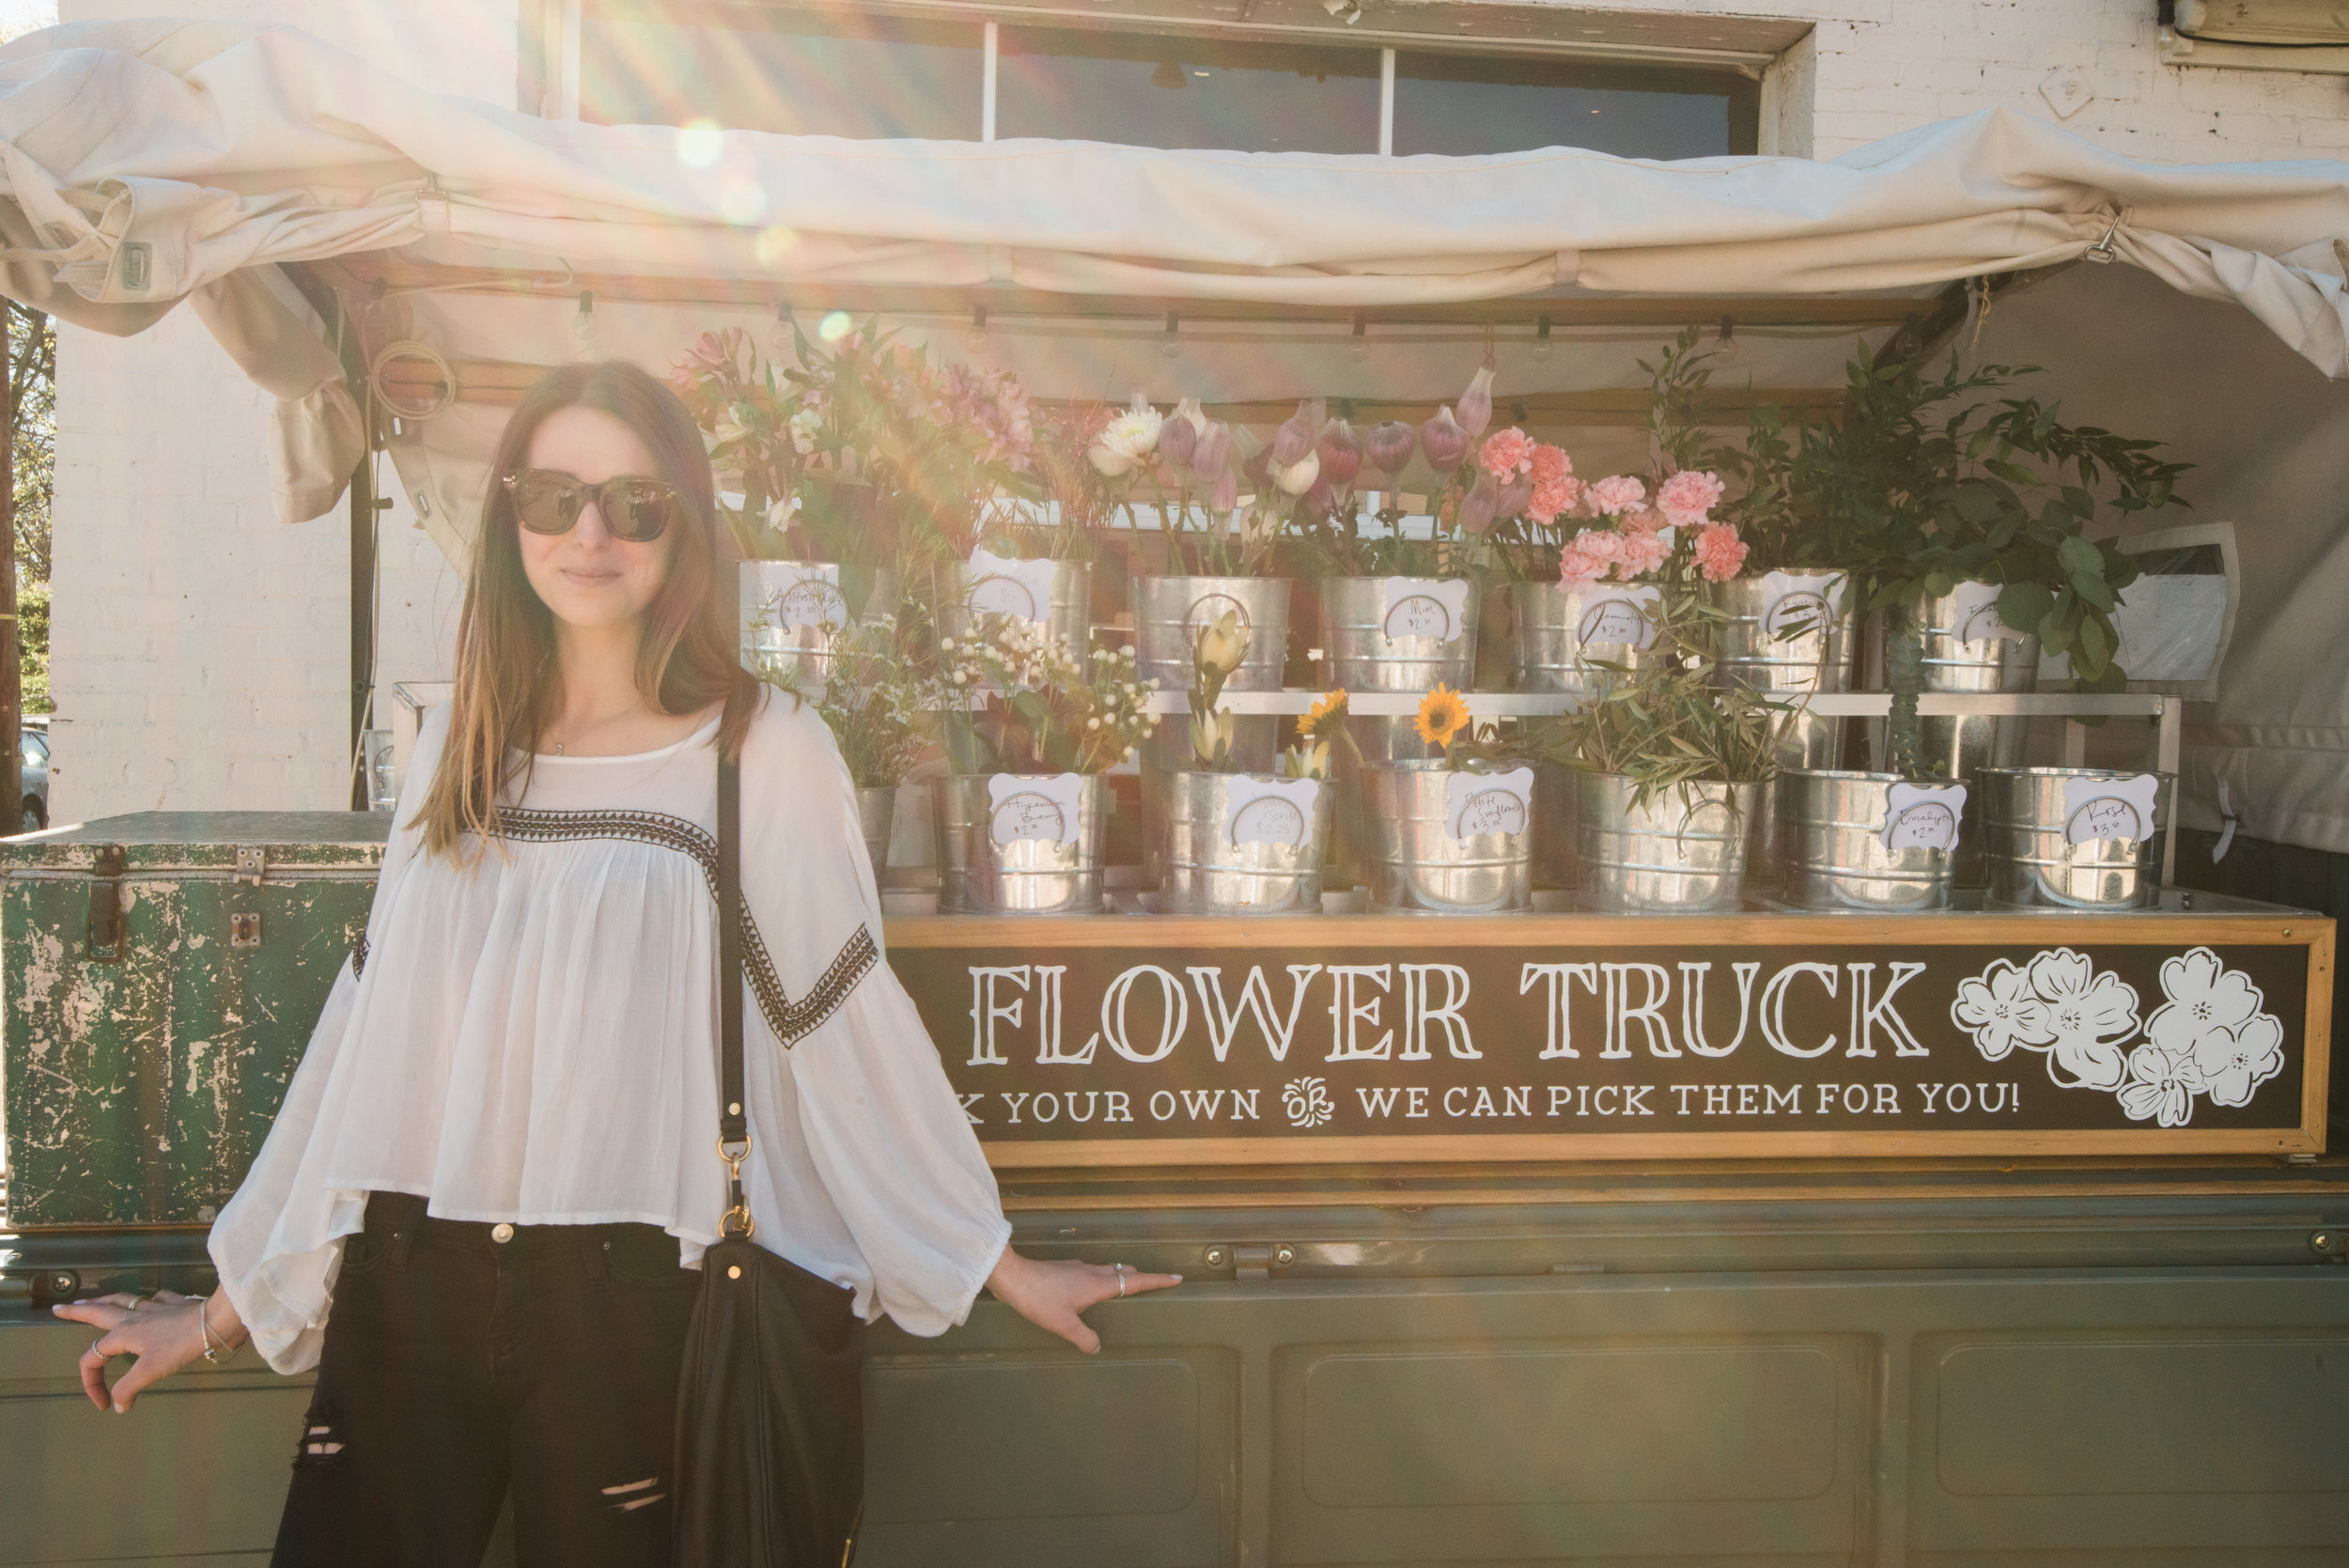 You can always find a food or a flower truck parked on 12 Ave South and we totally took advantage of the afternoon sunshine and hippie chic flair.